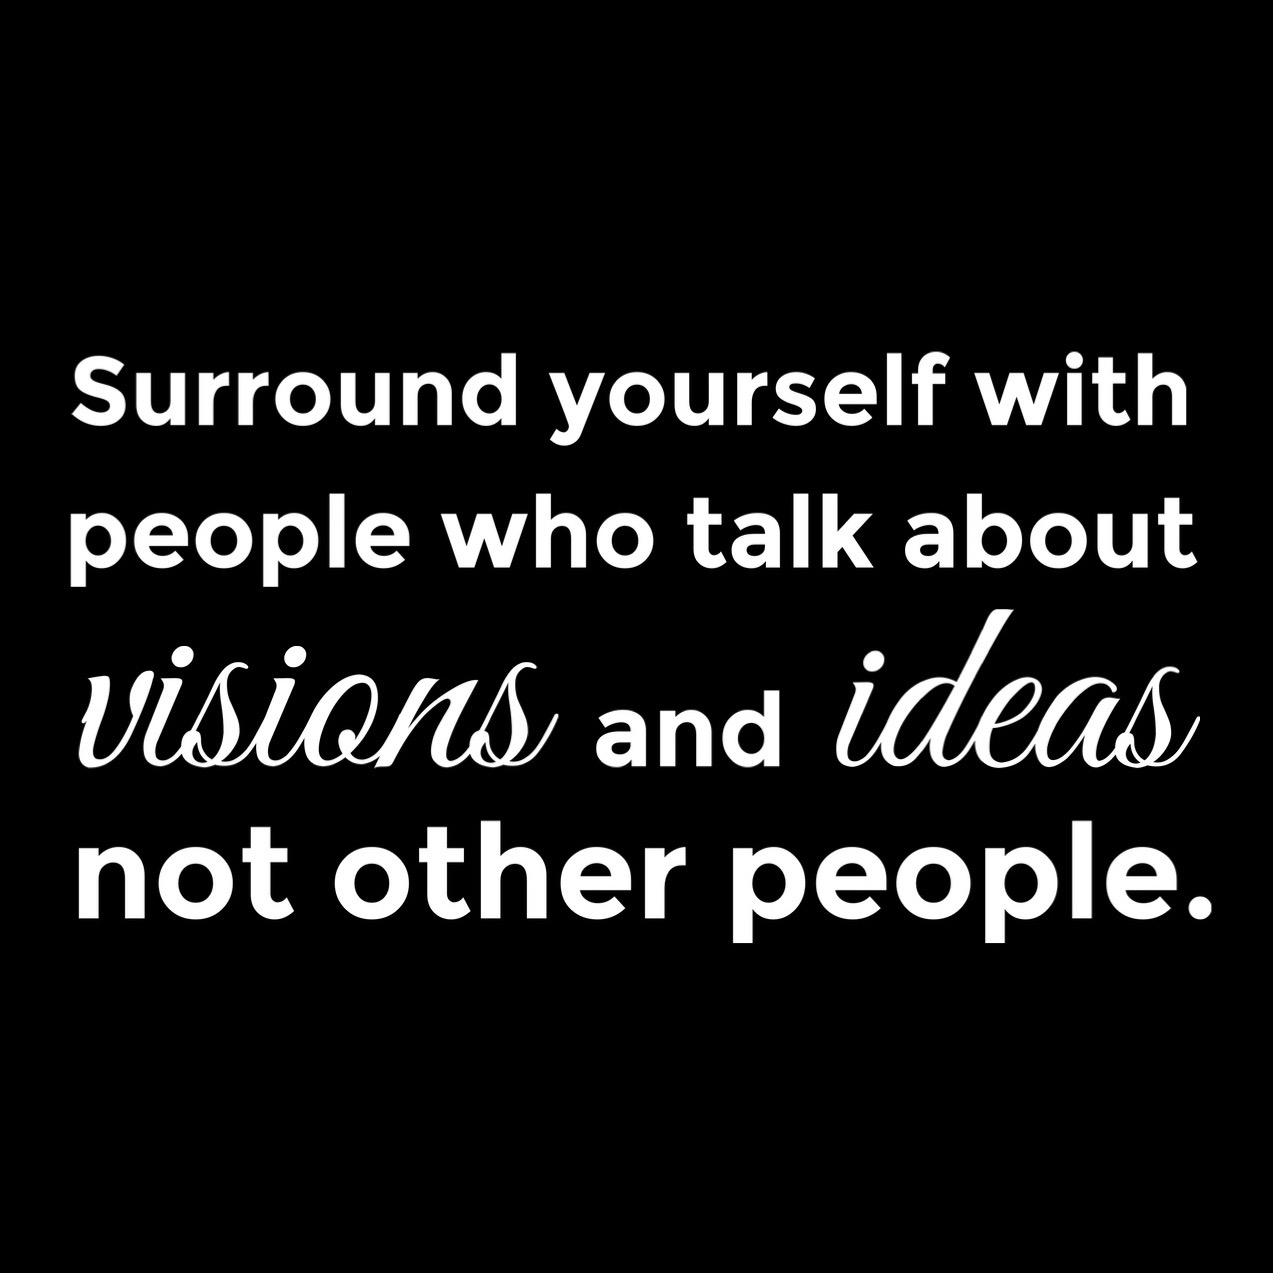 Motivational quote. Surround yourself with people who talk about visions and ideas not other people.